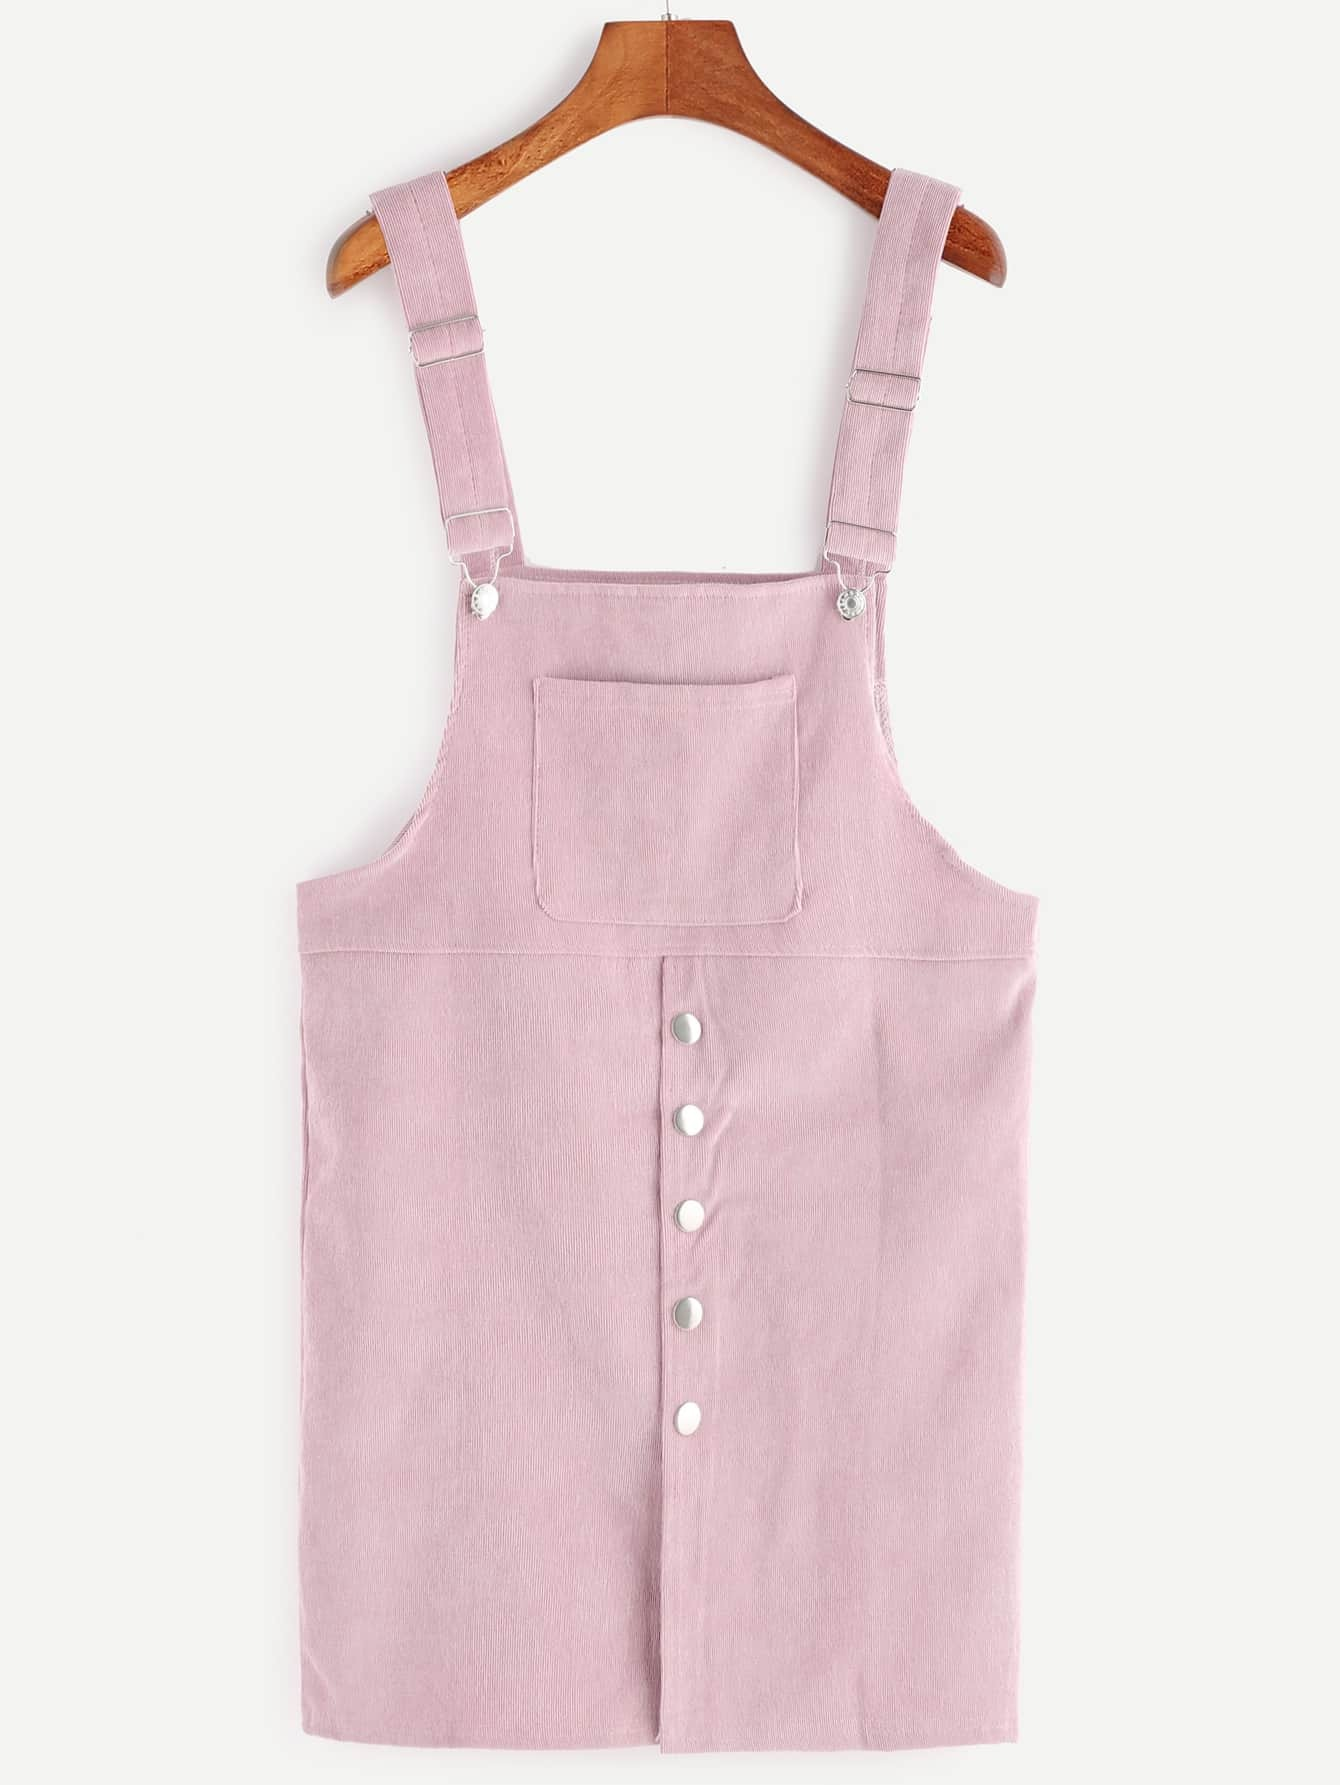 Pink Corduroy Single Breasted Overall Dress With Pocket